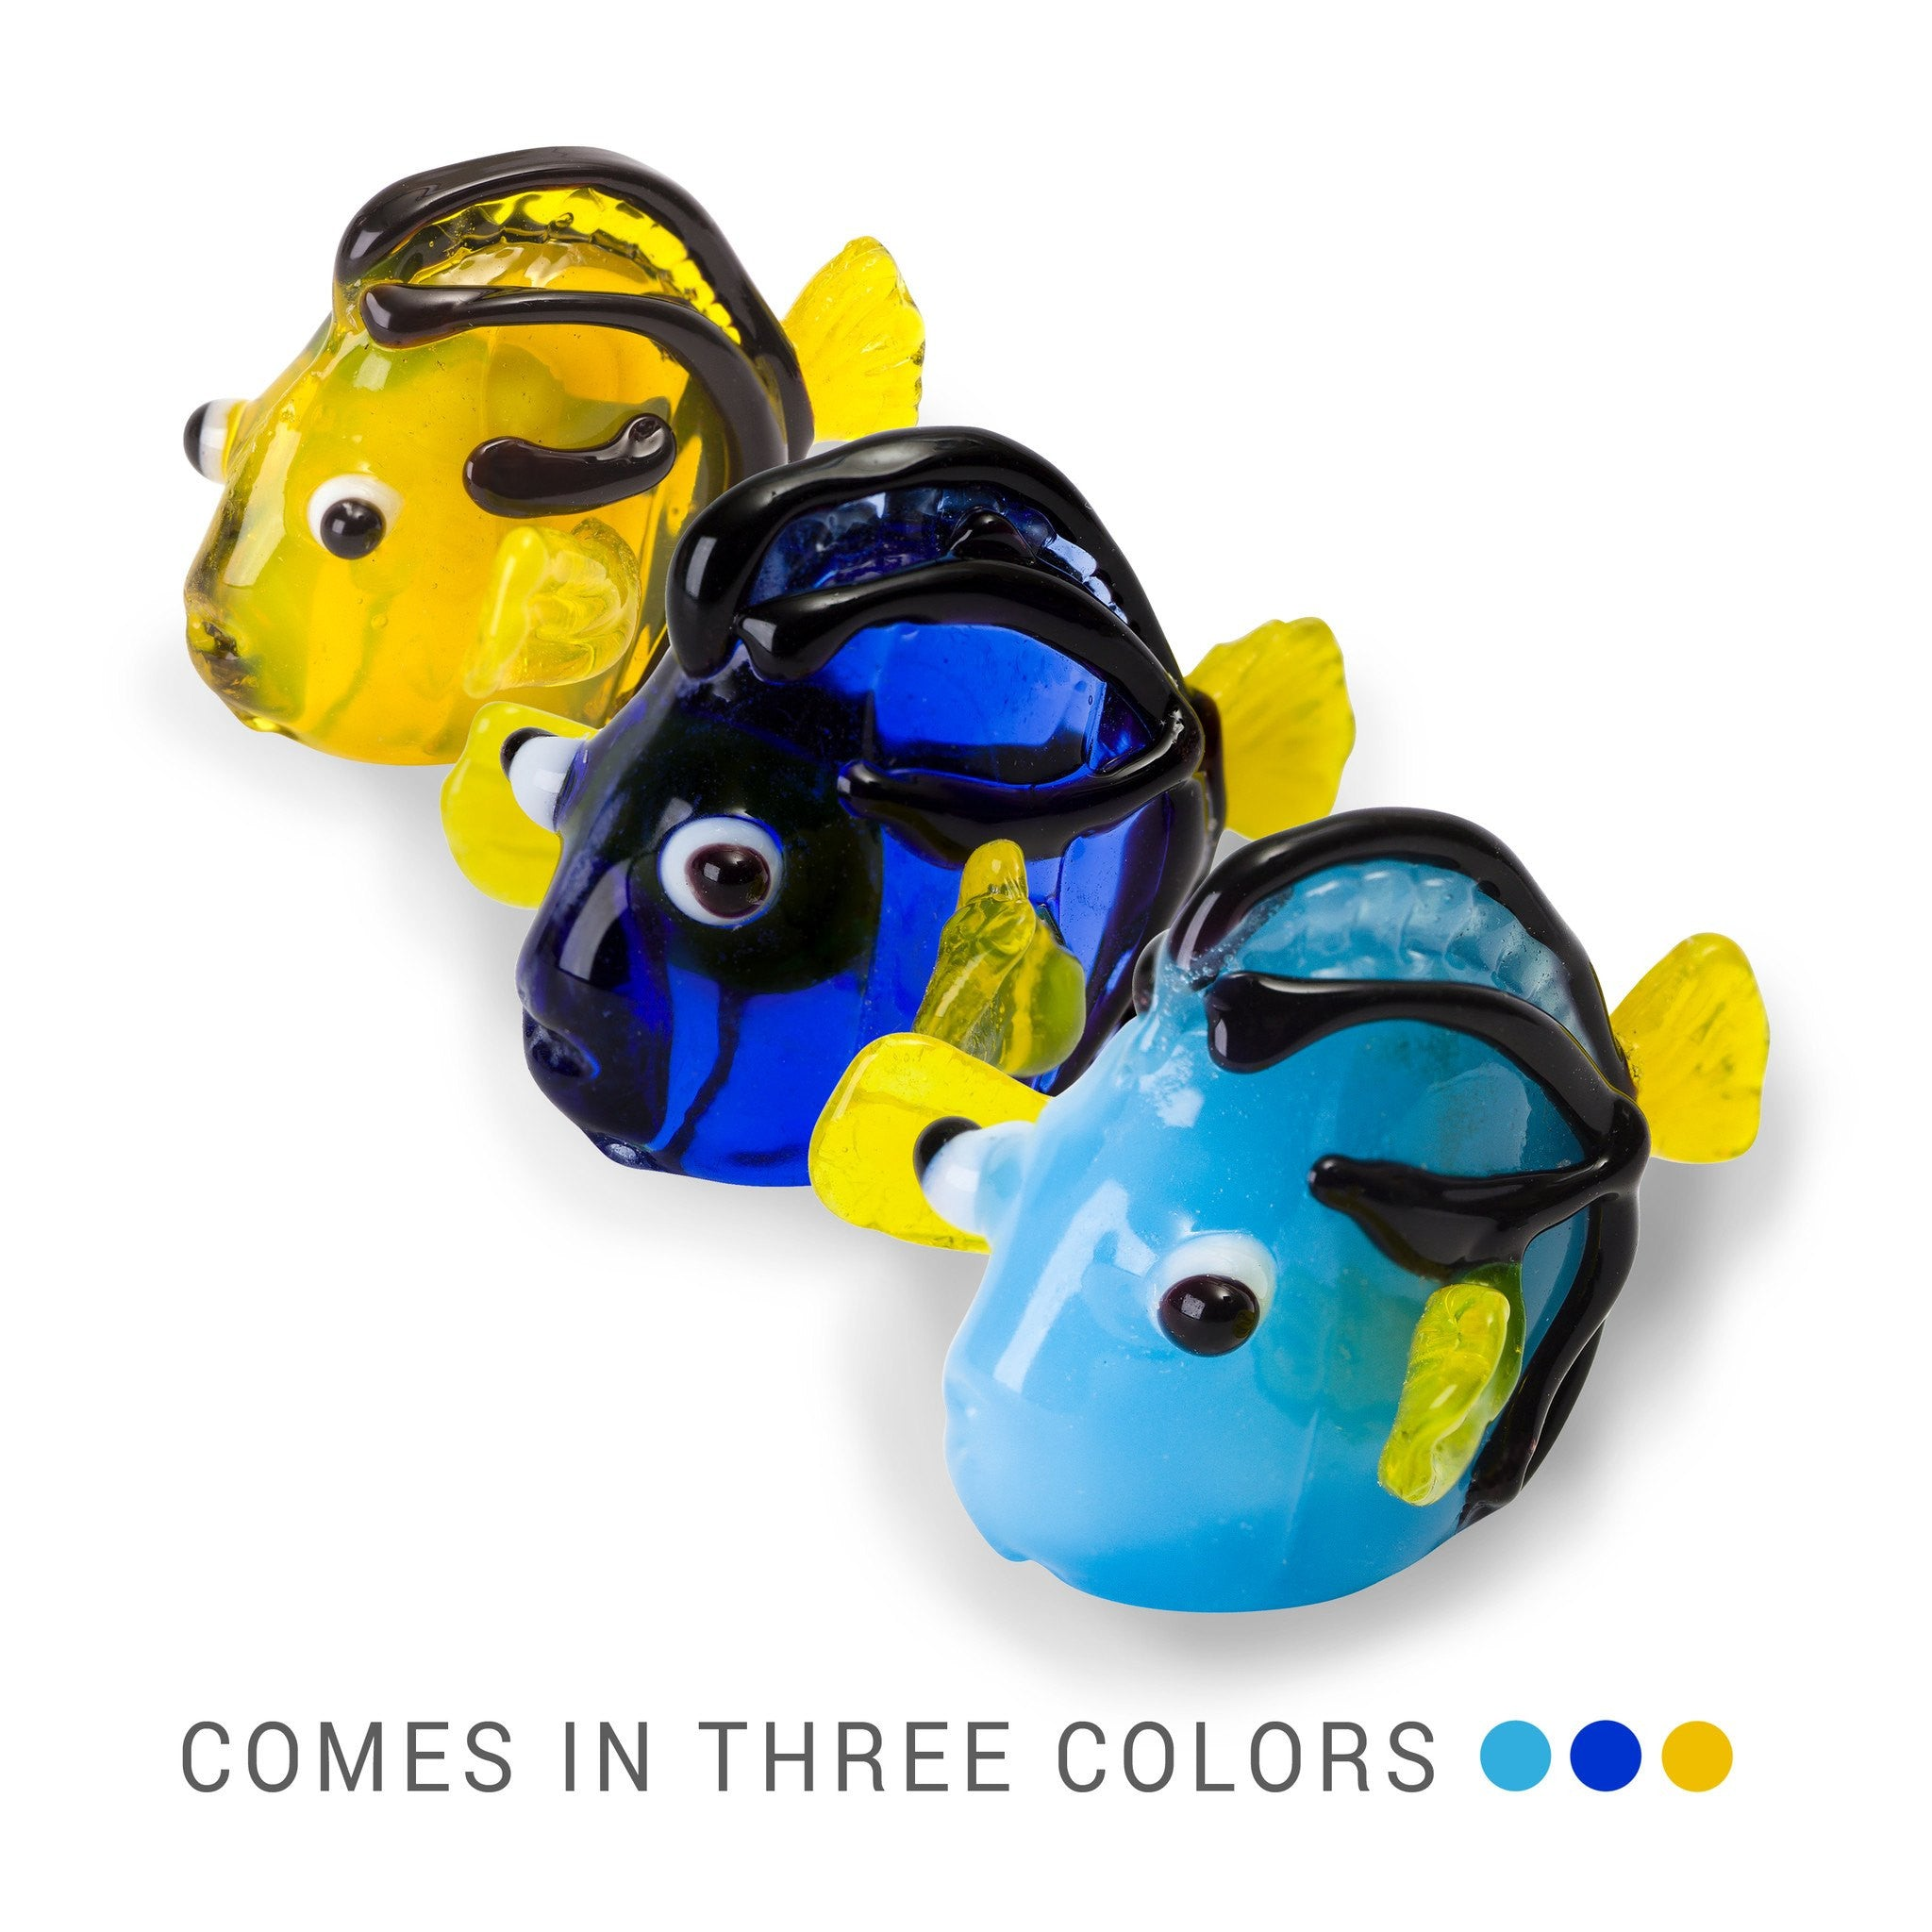 DORA the Blue Hippo Tang Fish (in Tynies Collector's Frame) Miniature glass figurines